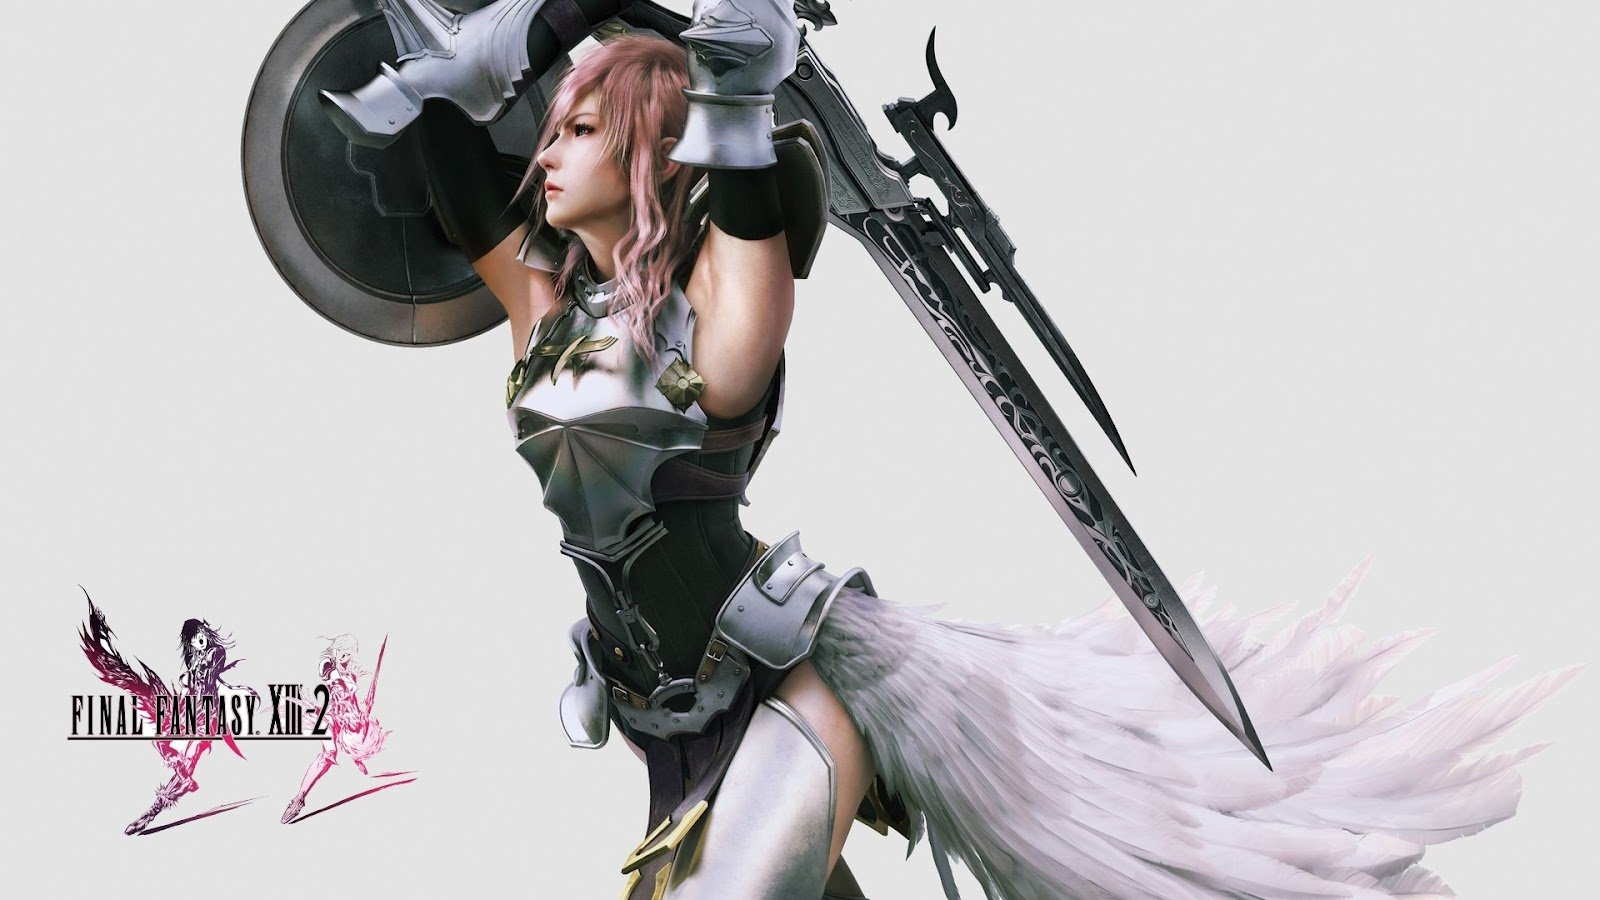 final fantasy xiii 2 wallpaper - wallpapersafari